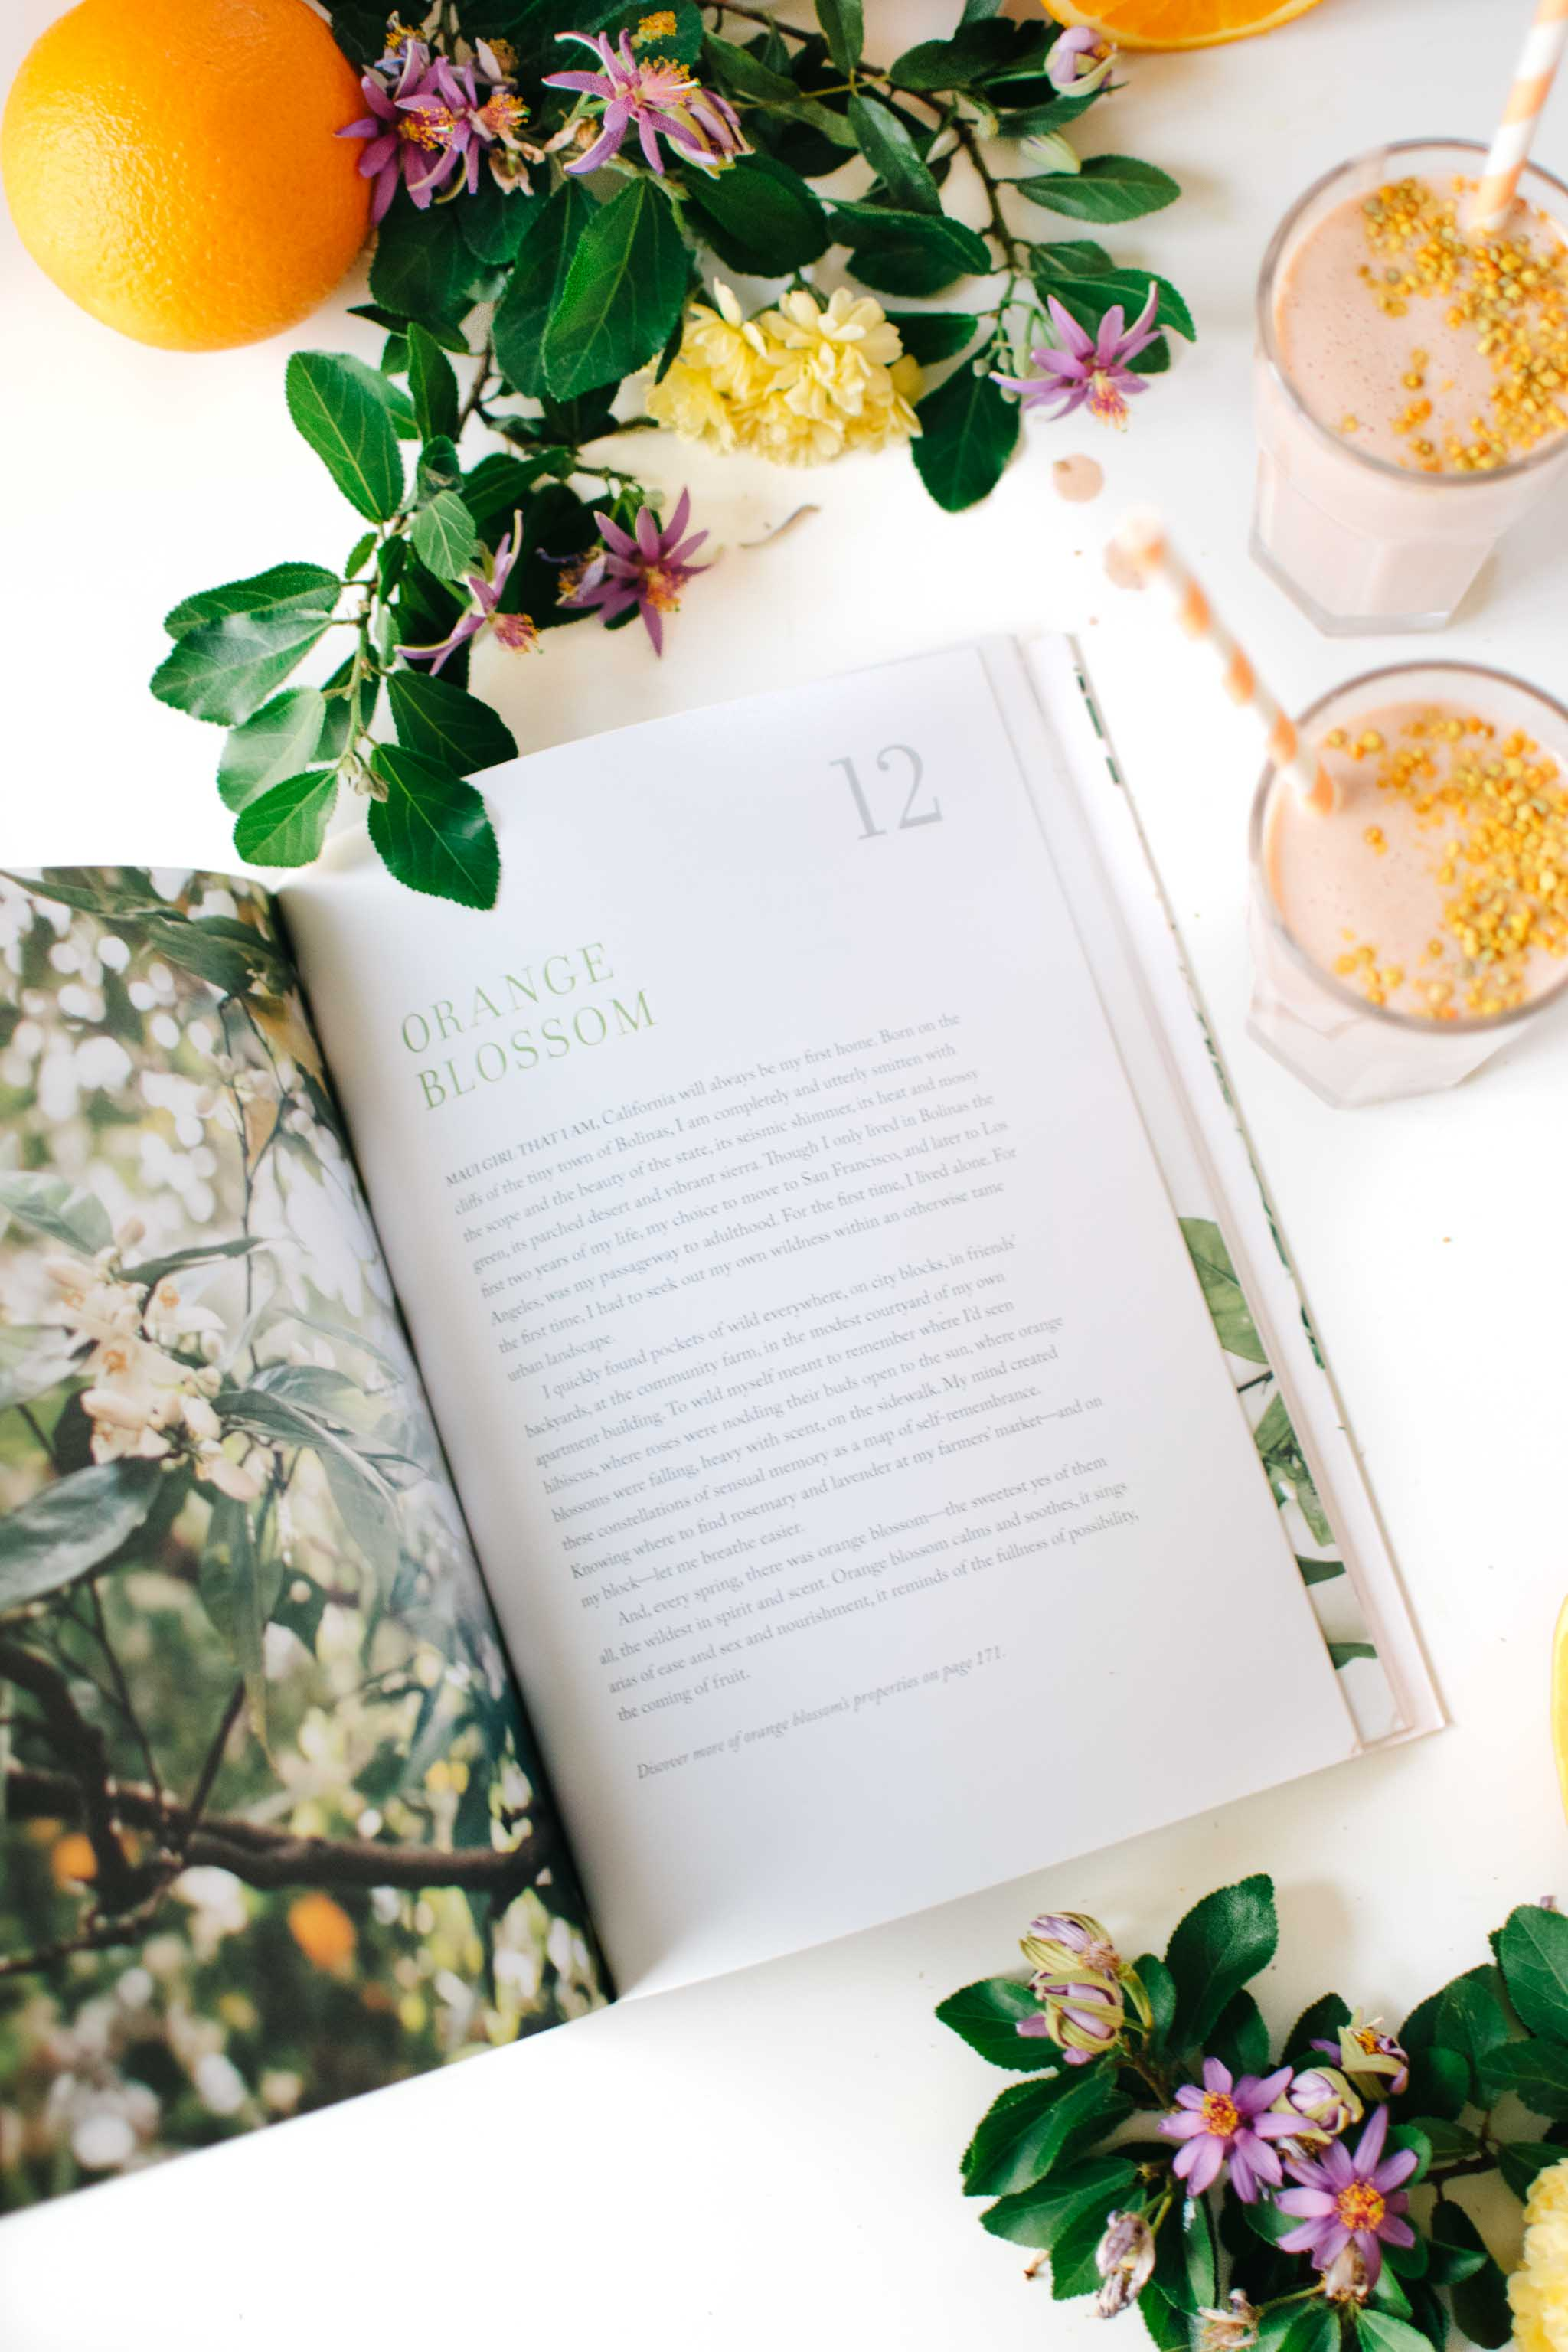 Orange Blossom Chapter from the Kale & Caramel Cookbook